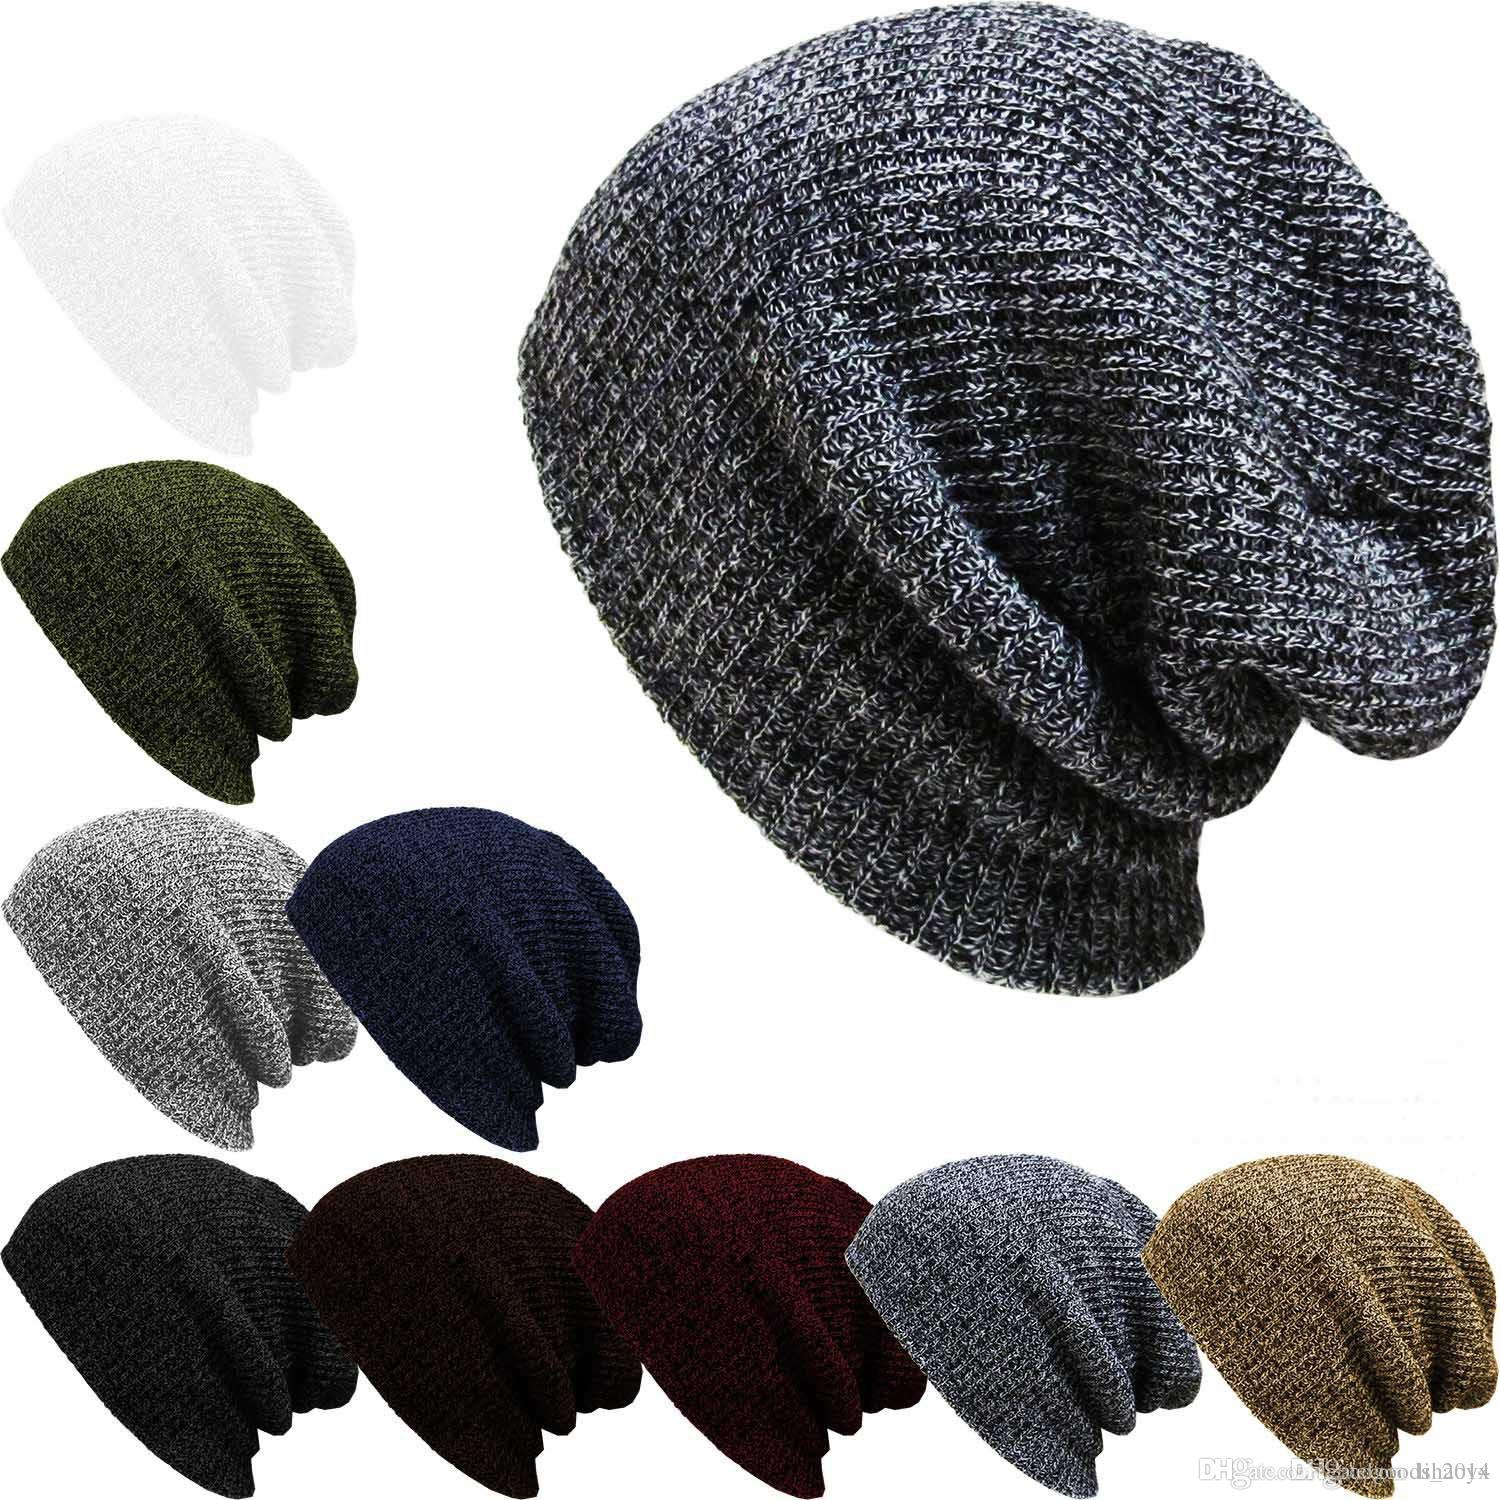 829e901e0d46d Knit Men S Women S Baggy Beanie Oversize Winter Warm Hat Ski Slouchy Chic  Crochet Knitted Cap Skull B274 Cool Hats Cloche Hat From Lihaoyx